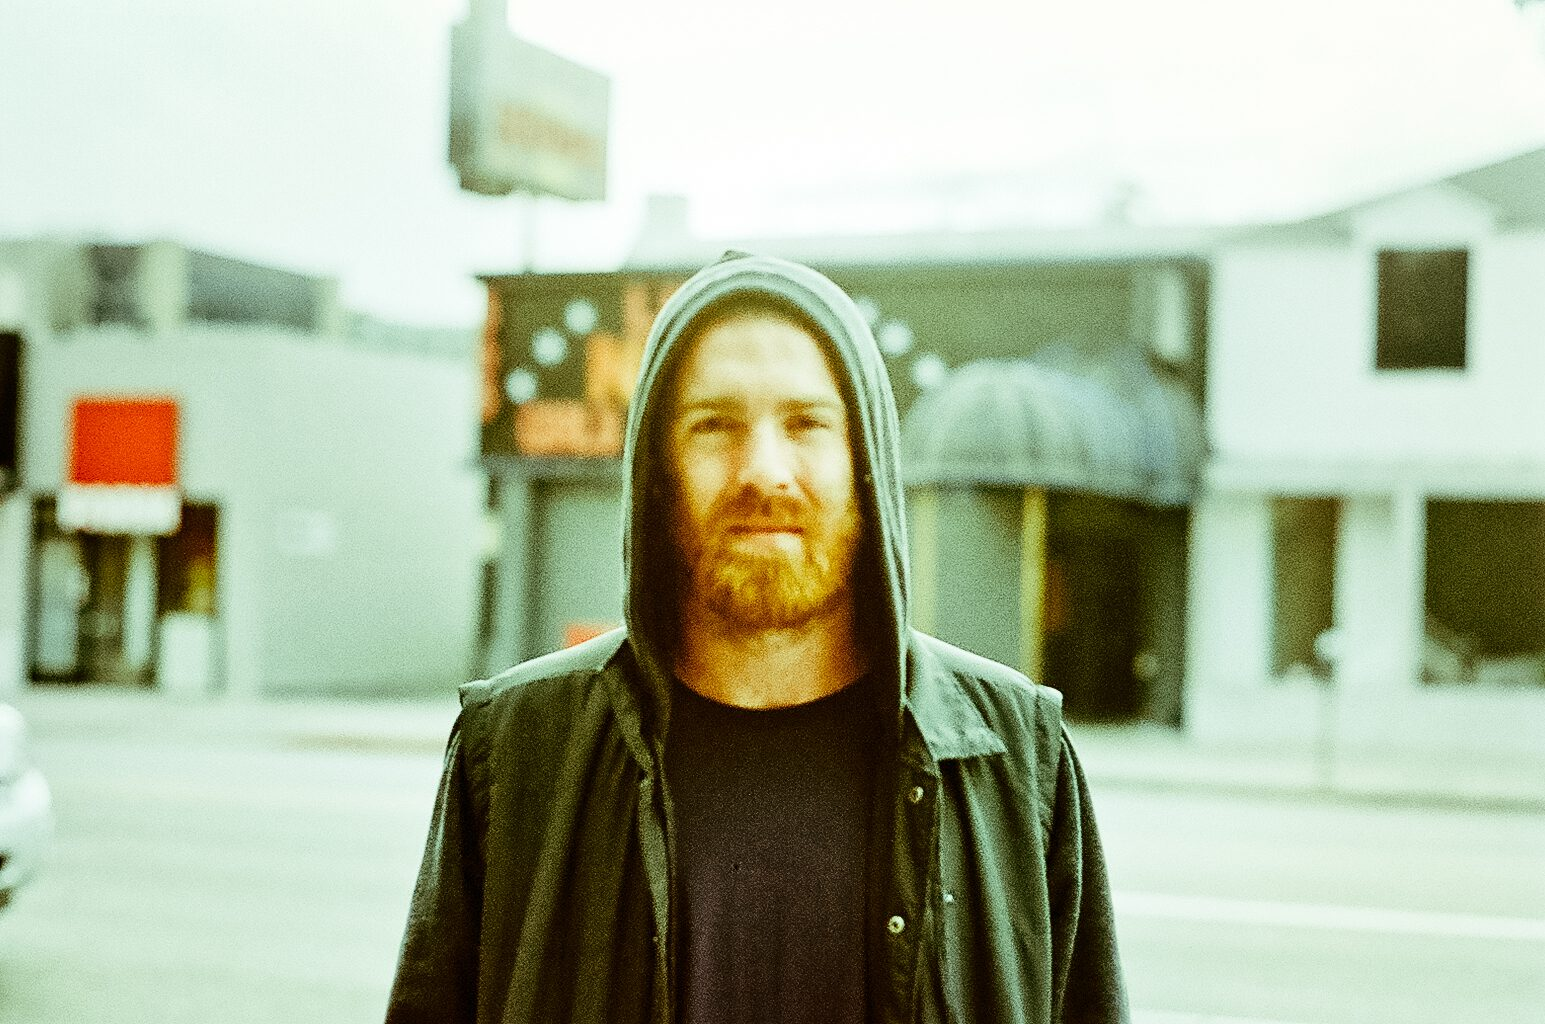 Chet Faker Changes His Name to Nick Murphy